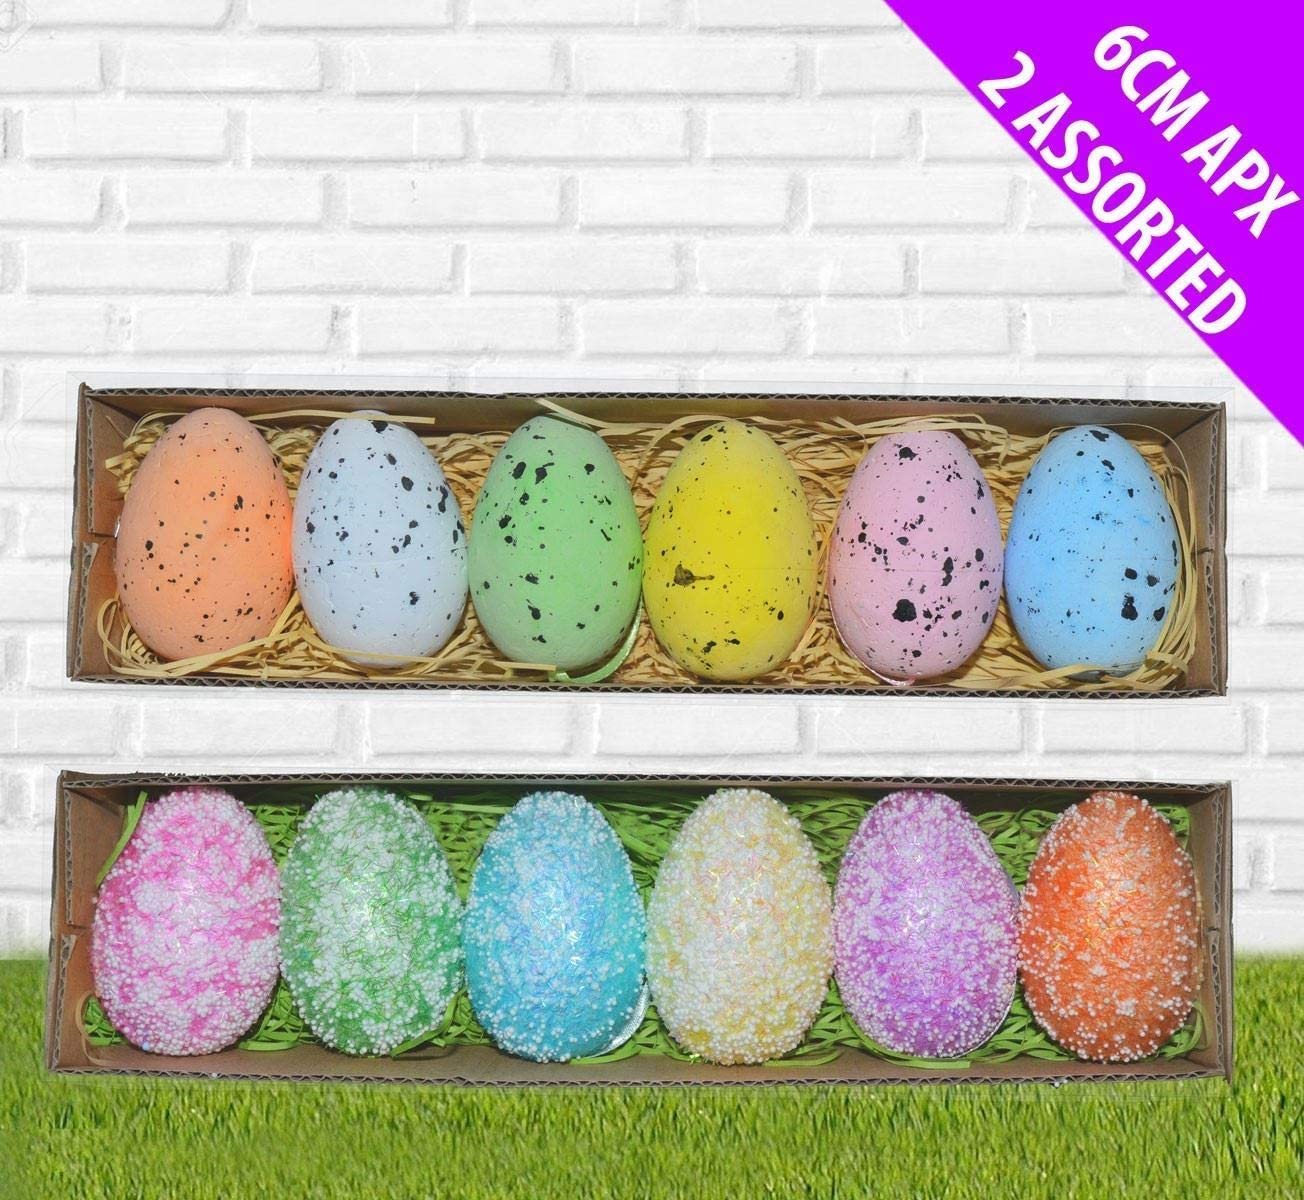 Jaymark Easter Egg Decorations 12 Assorted Colourful Speckled Eggs Hanging Tree Ornaments Amazon Co Uk Kitchen Home